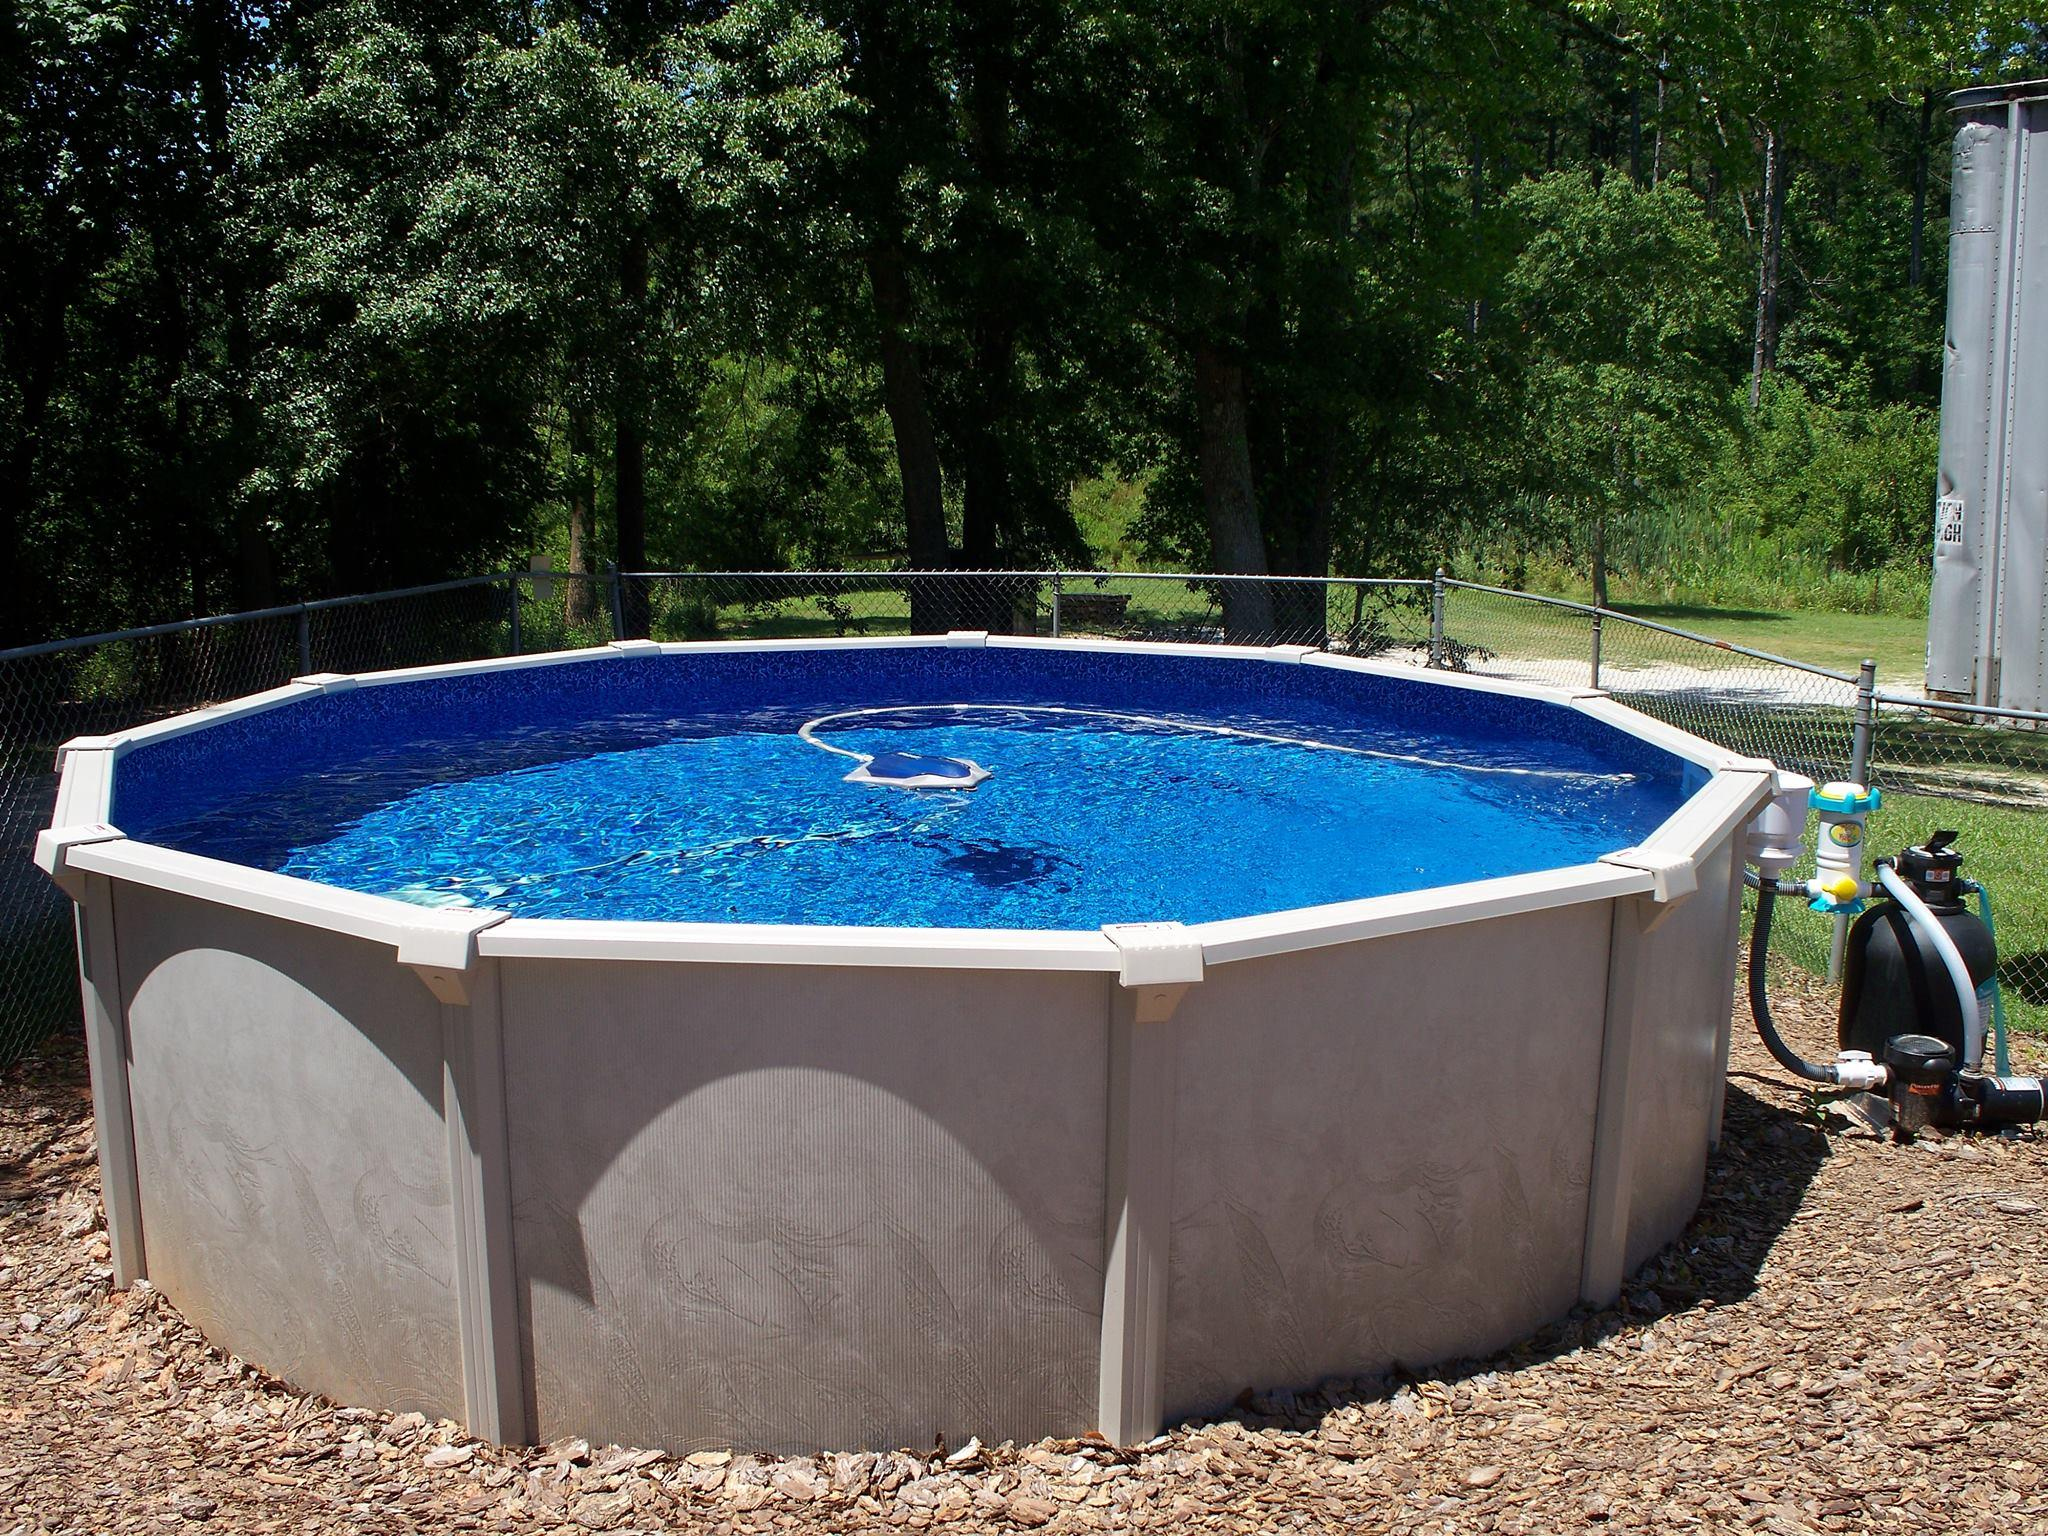 Pinch a penny pool supplies service repair for Cheap swimming pools near me